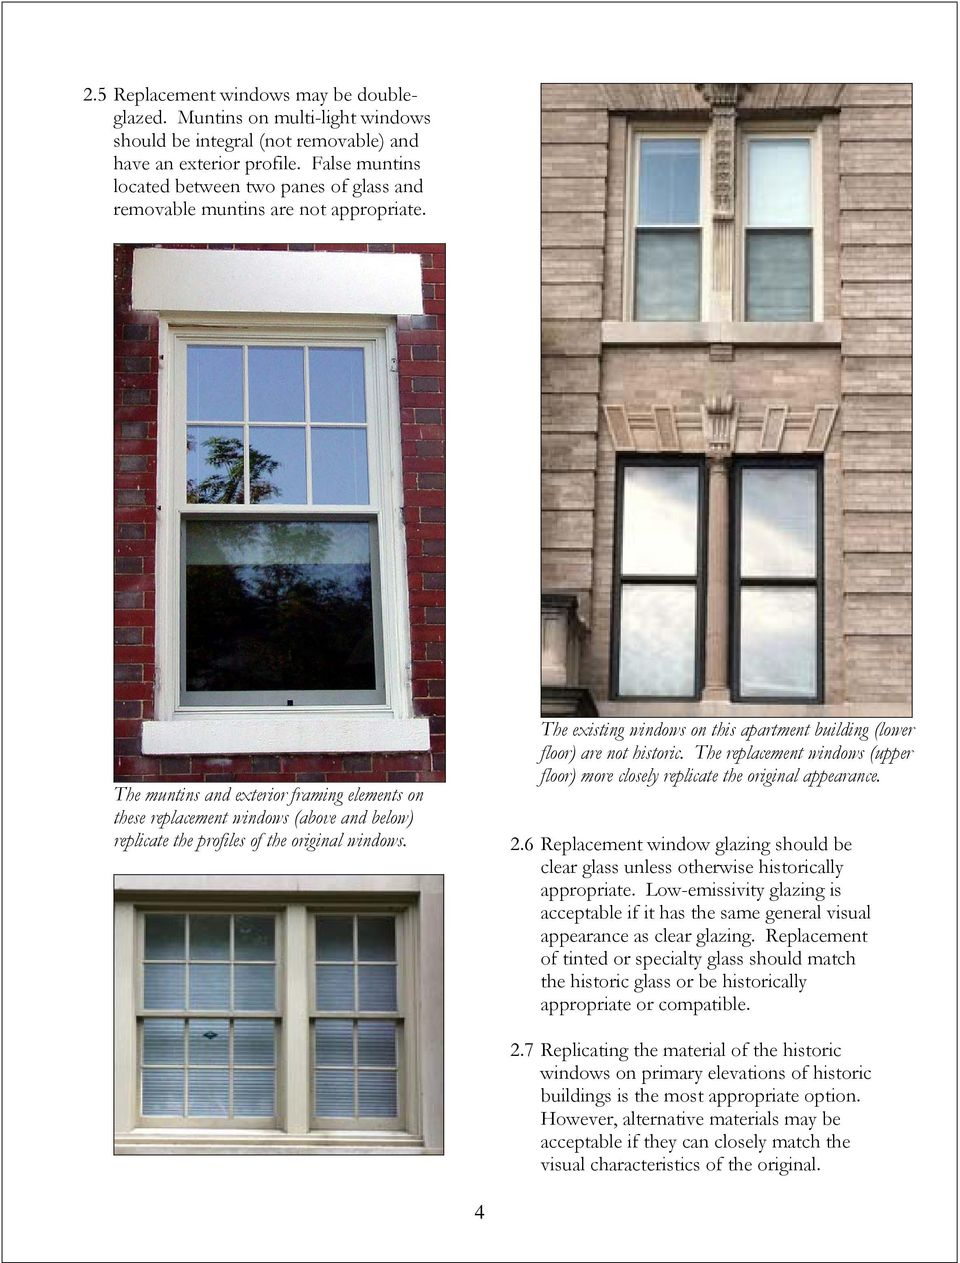 The muntins and exterior framing elements on these replacement windows (above and below) replicate the profiles of the original windows.